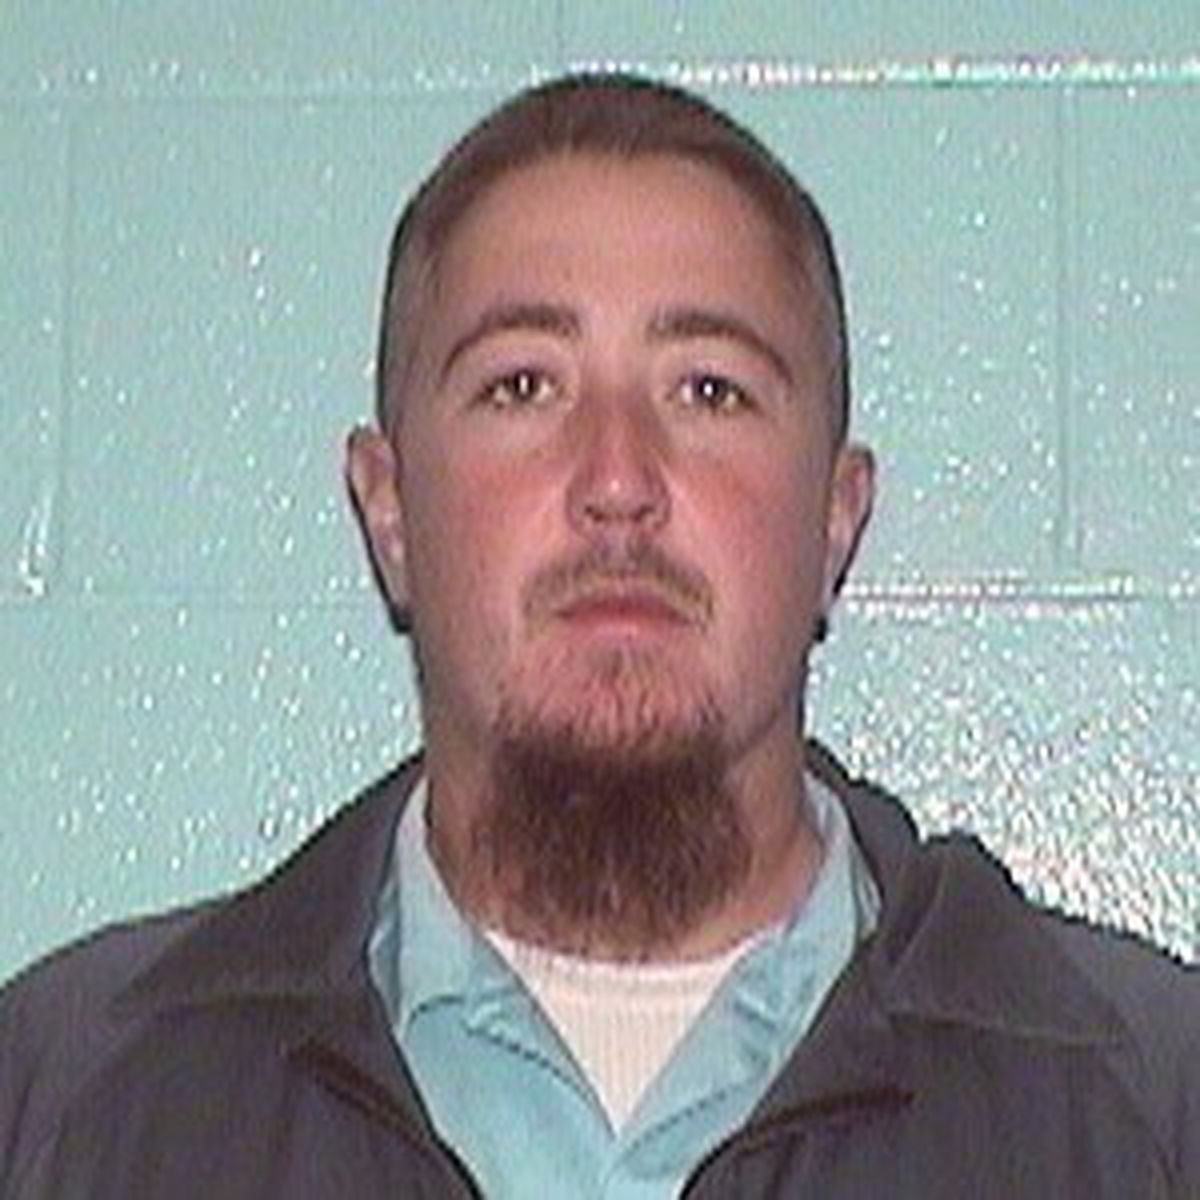 Painter Deputies Arrest Escaped Inmate: Law Enforcement Searching For Escaped Inmate In Wayne Co